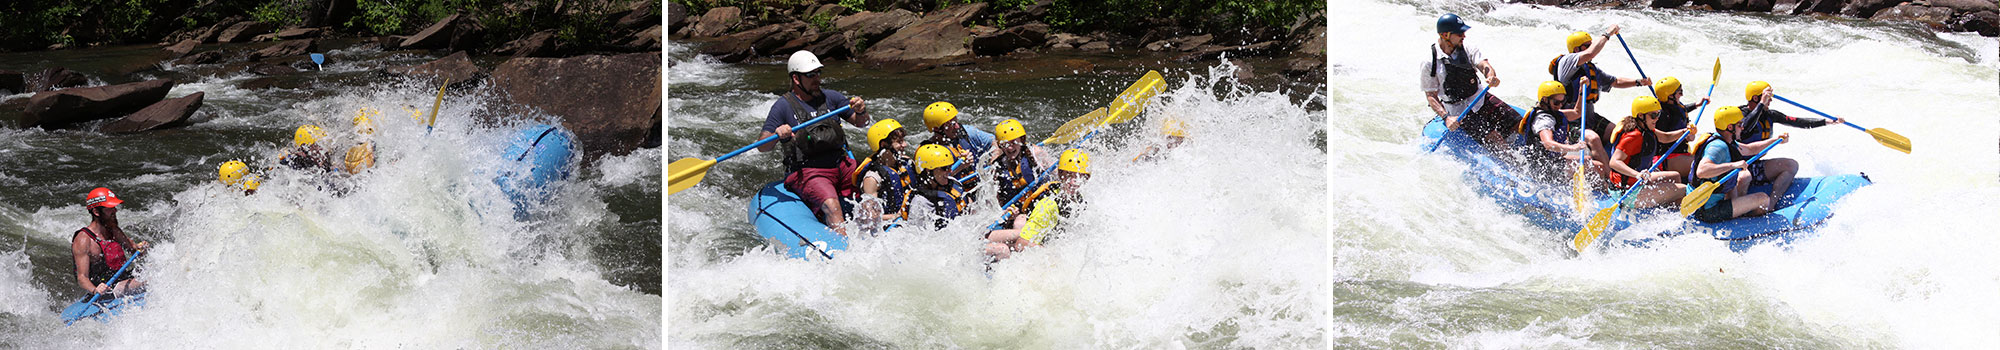 Frequently Asked Questions about Ocoee River Whitewater Rafting.